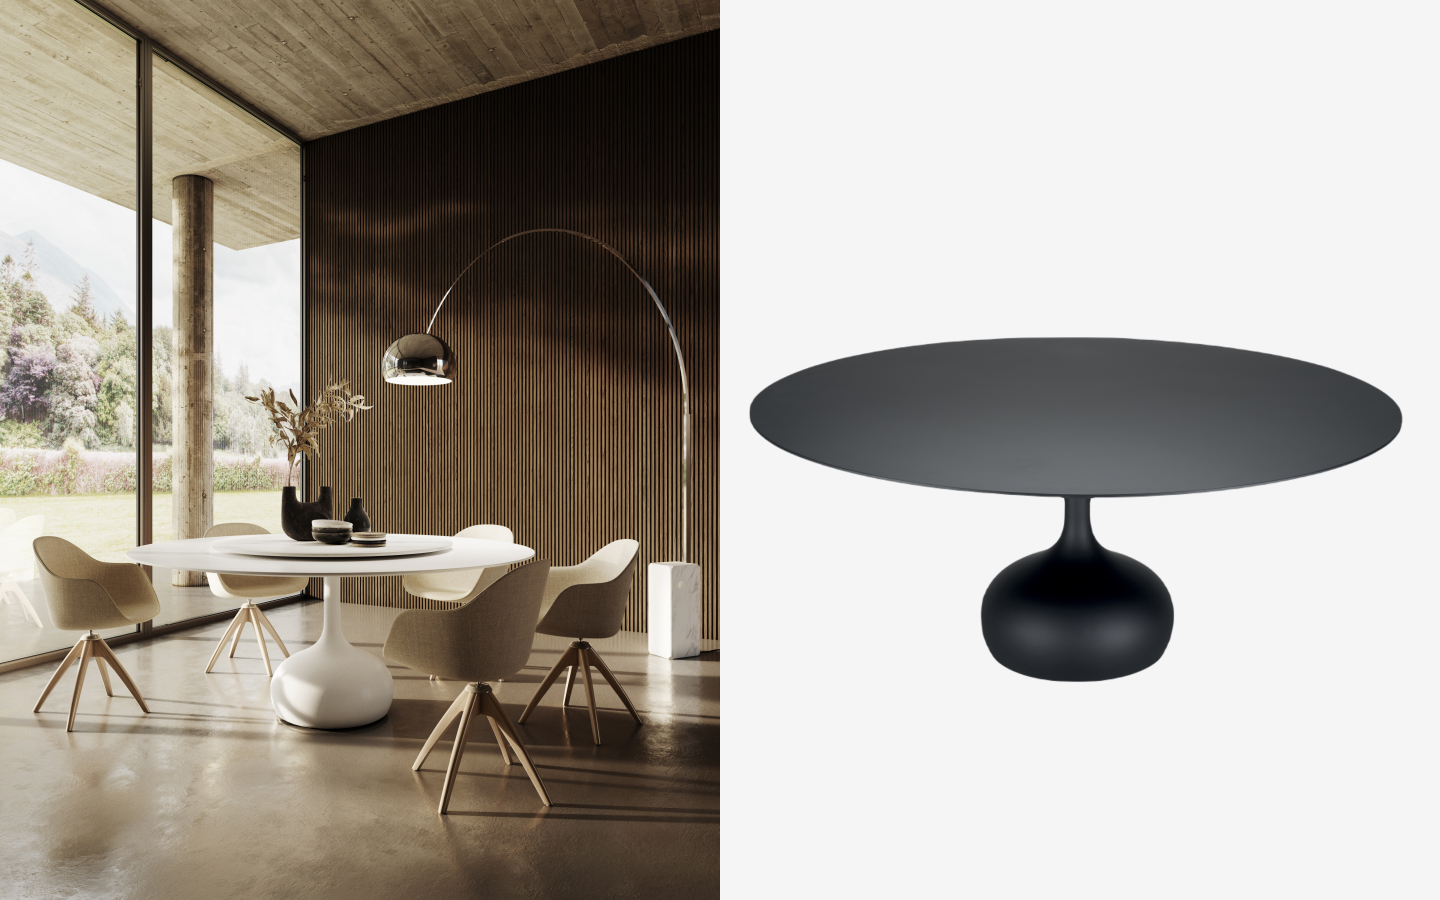 Round dining tables in black and white